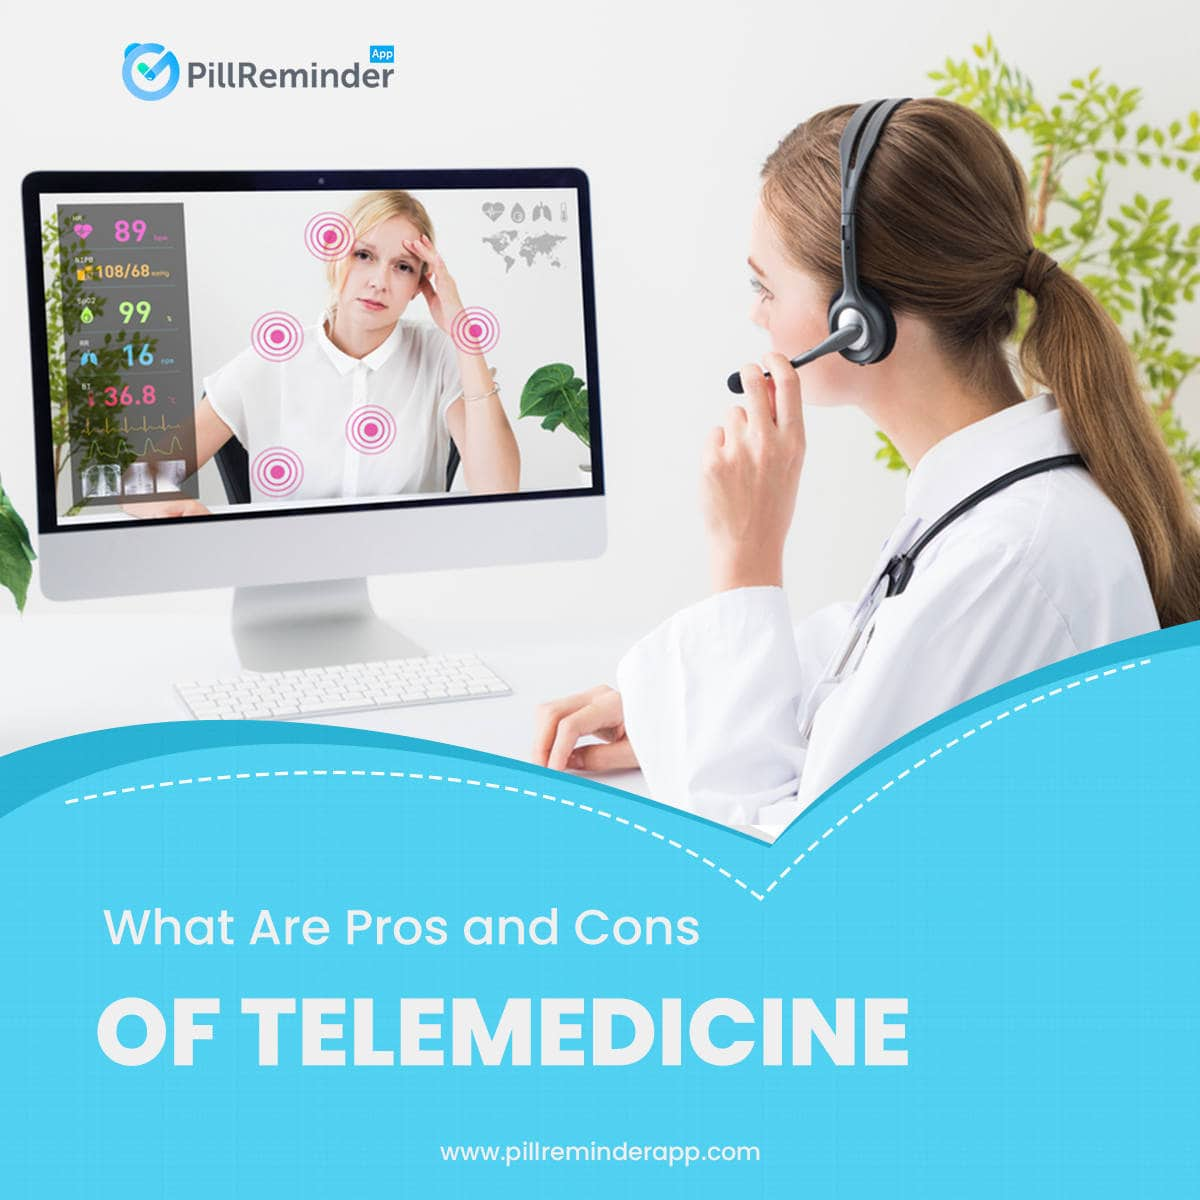 What Are Pros and Cons of Telemedicine